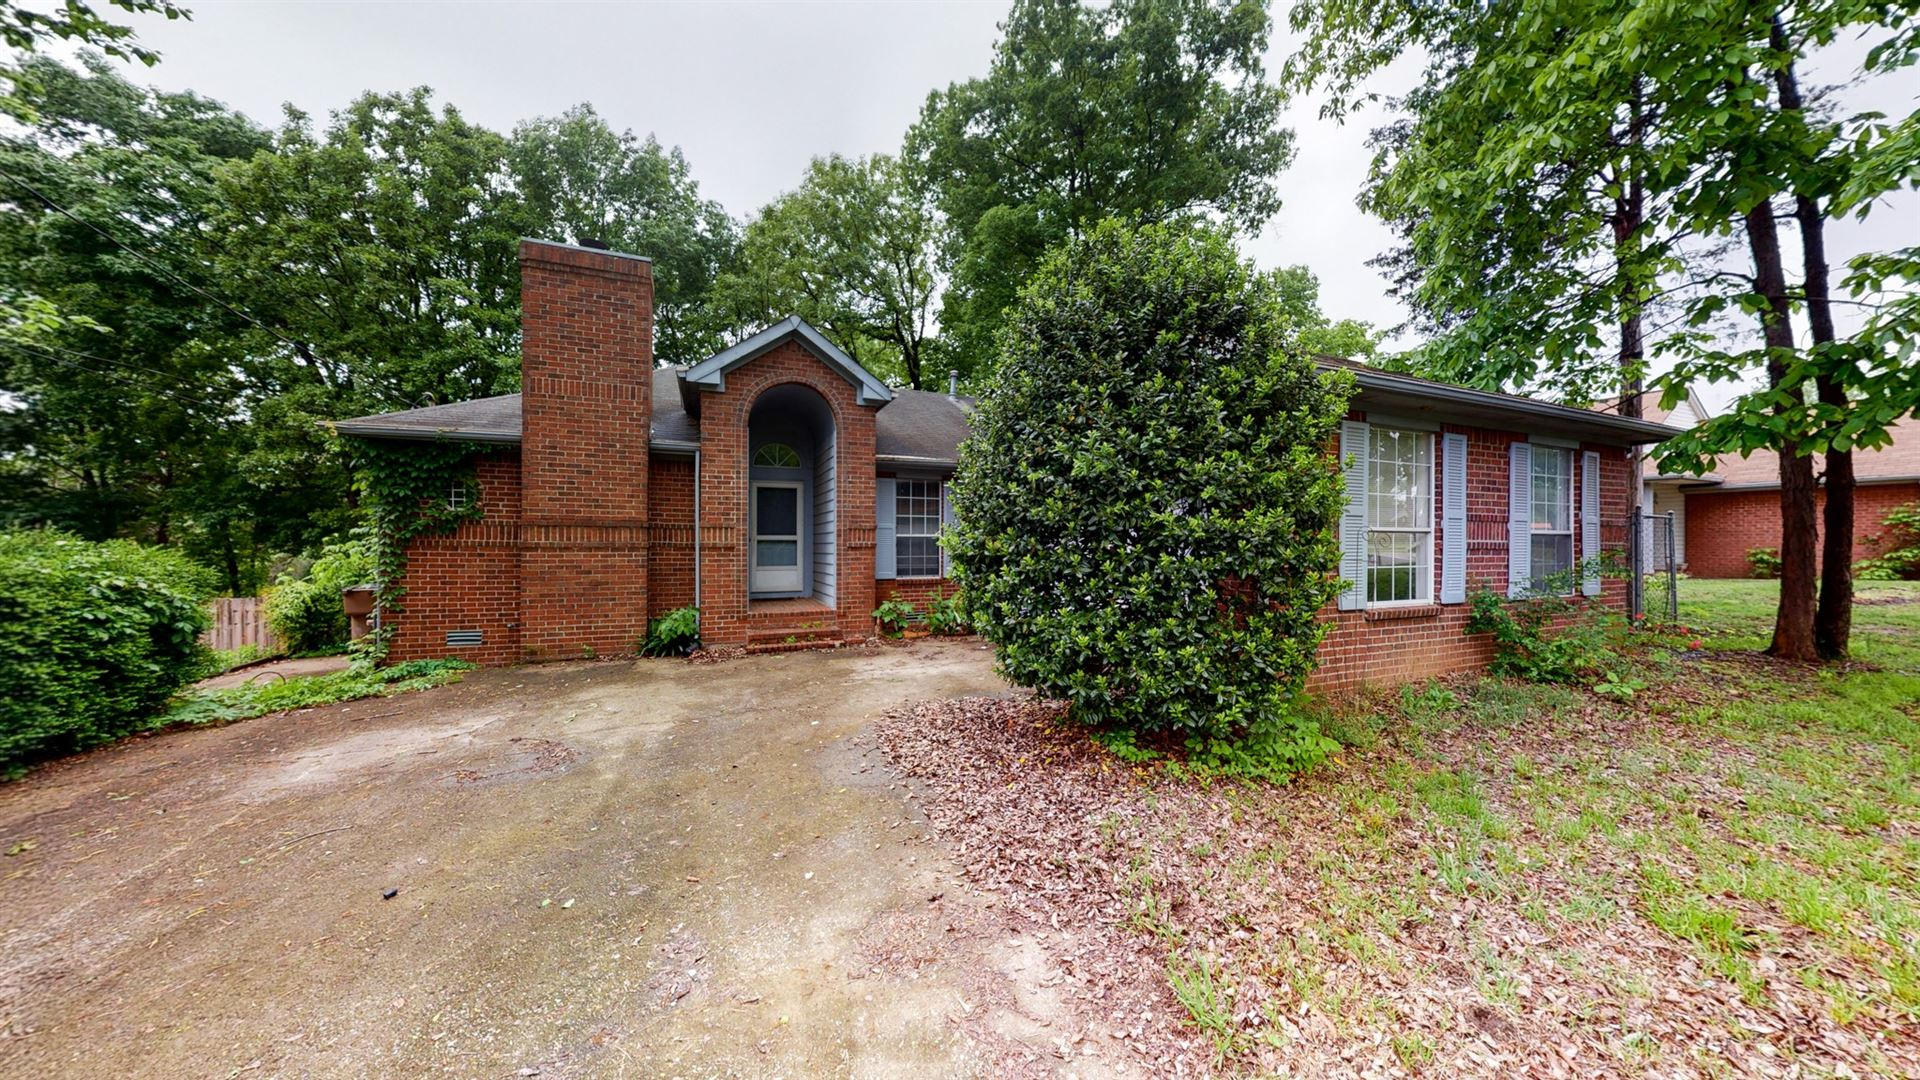 3804 Round Rock Dr, Antioch, TN 37013 - MLS#: 2250282